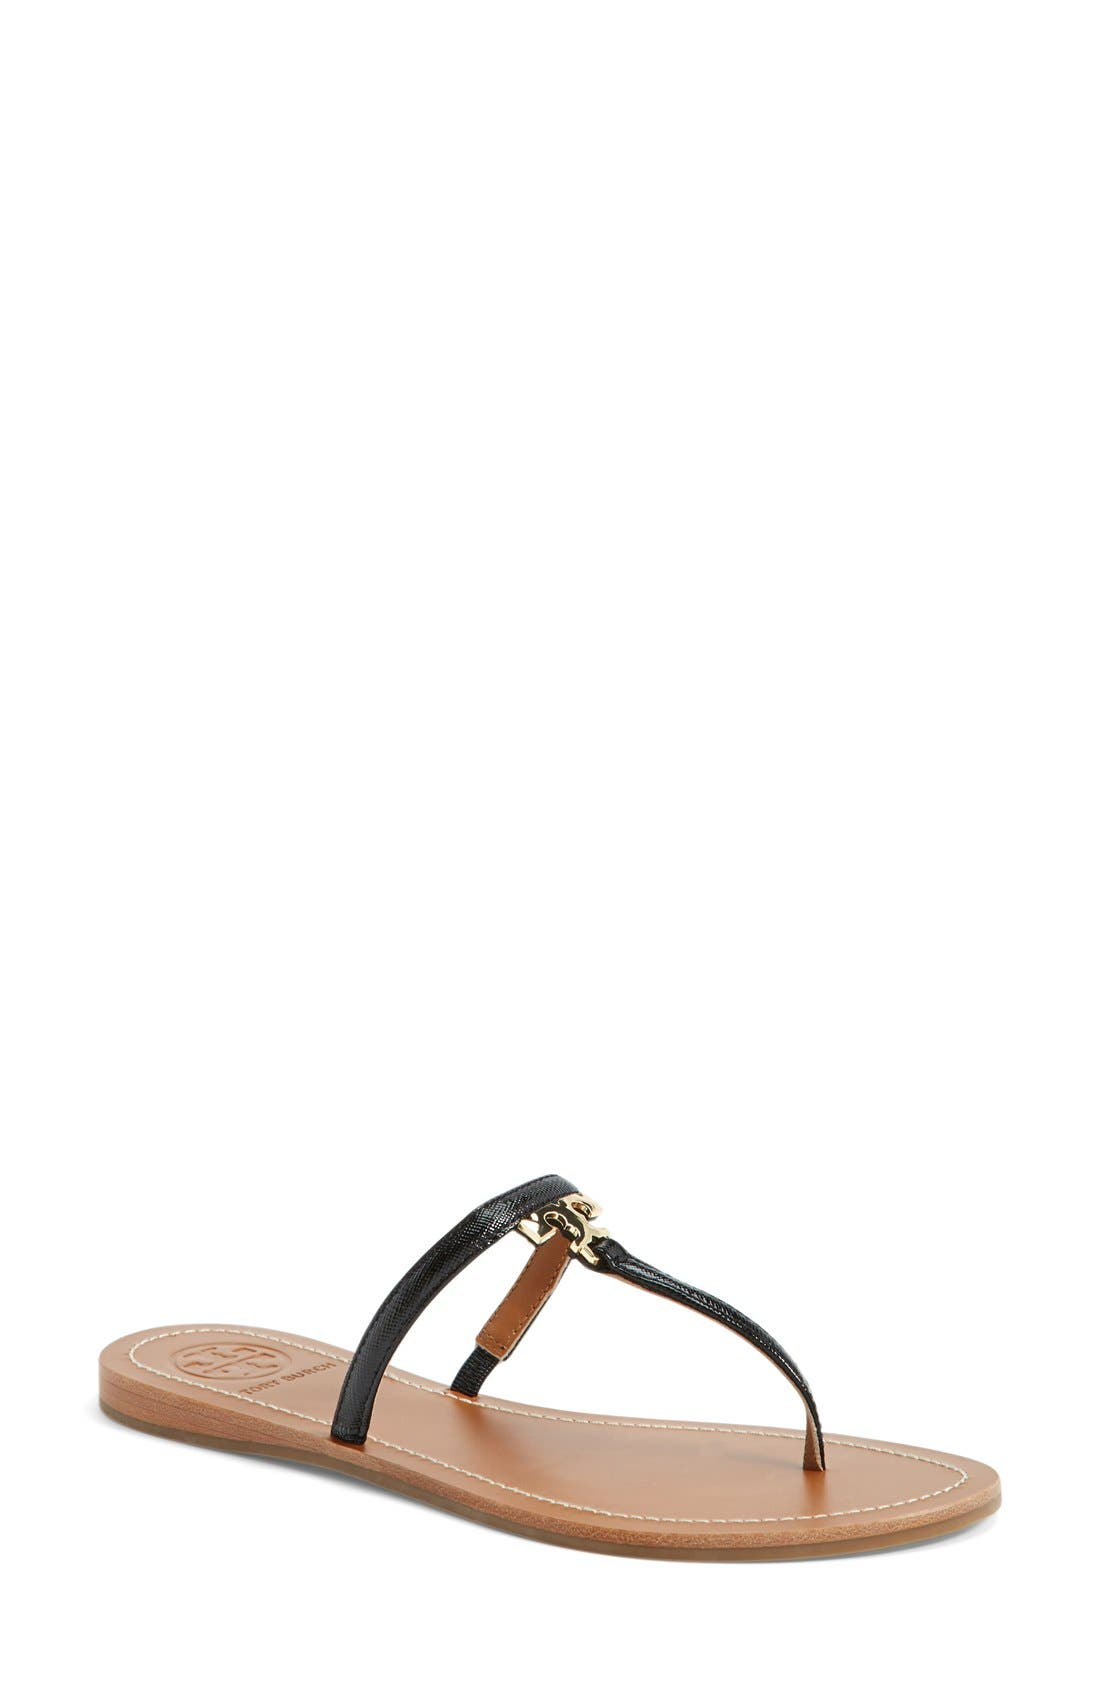 Alternate Image 1 Selected - Tory Burch 'T' Logo Leather Thong Sandal (Women)